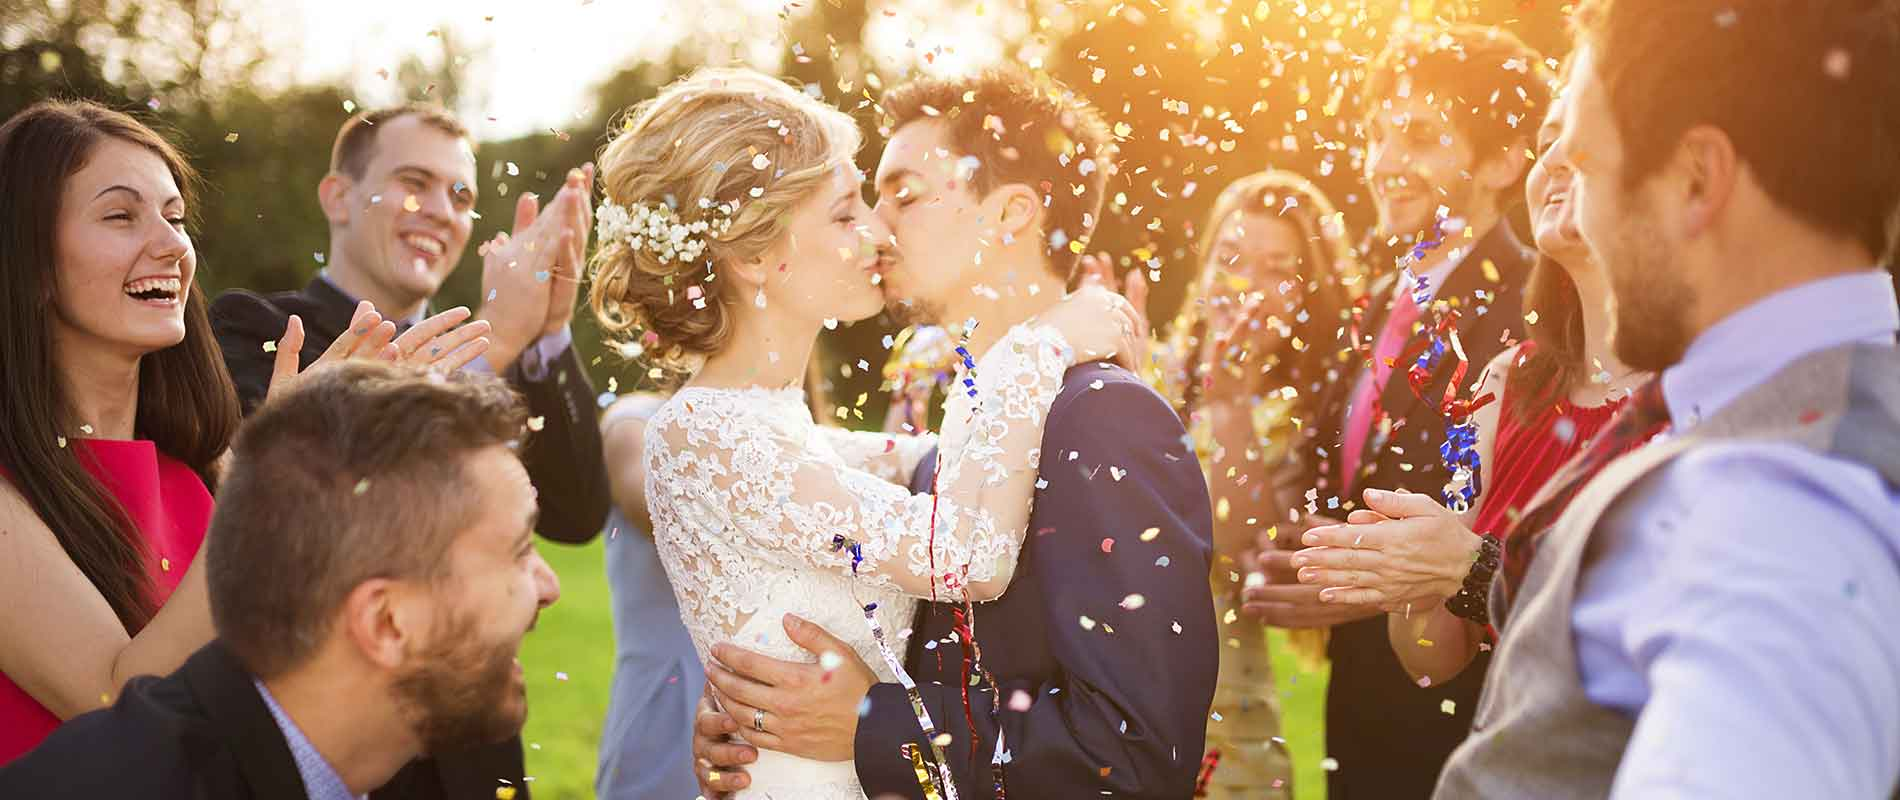 Things To Remember To Budget For, For Your Wedding